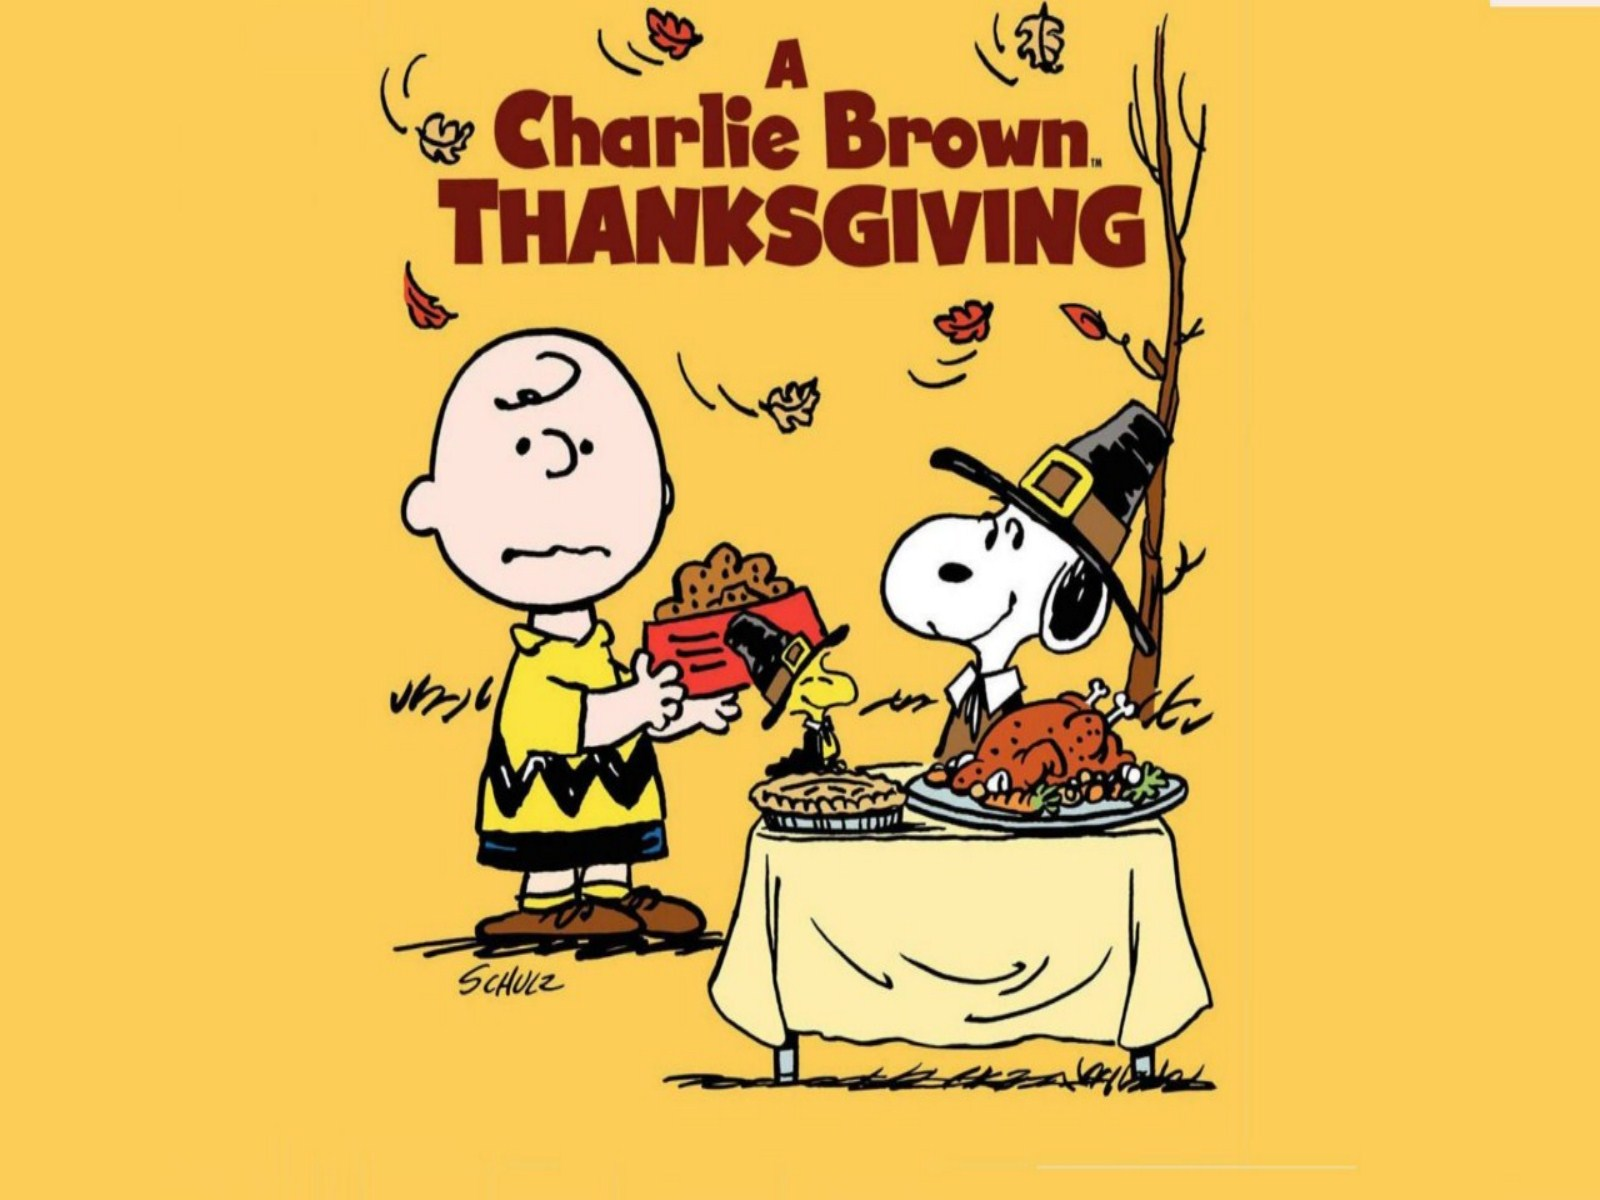 Free Thanksgiving Day Charlie Brown Backgrounds